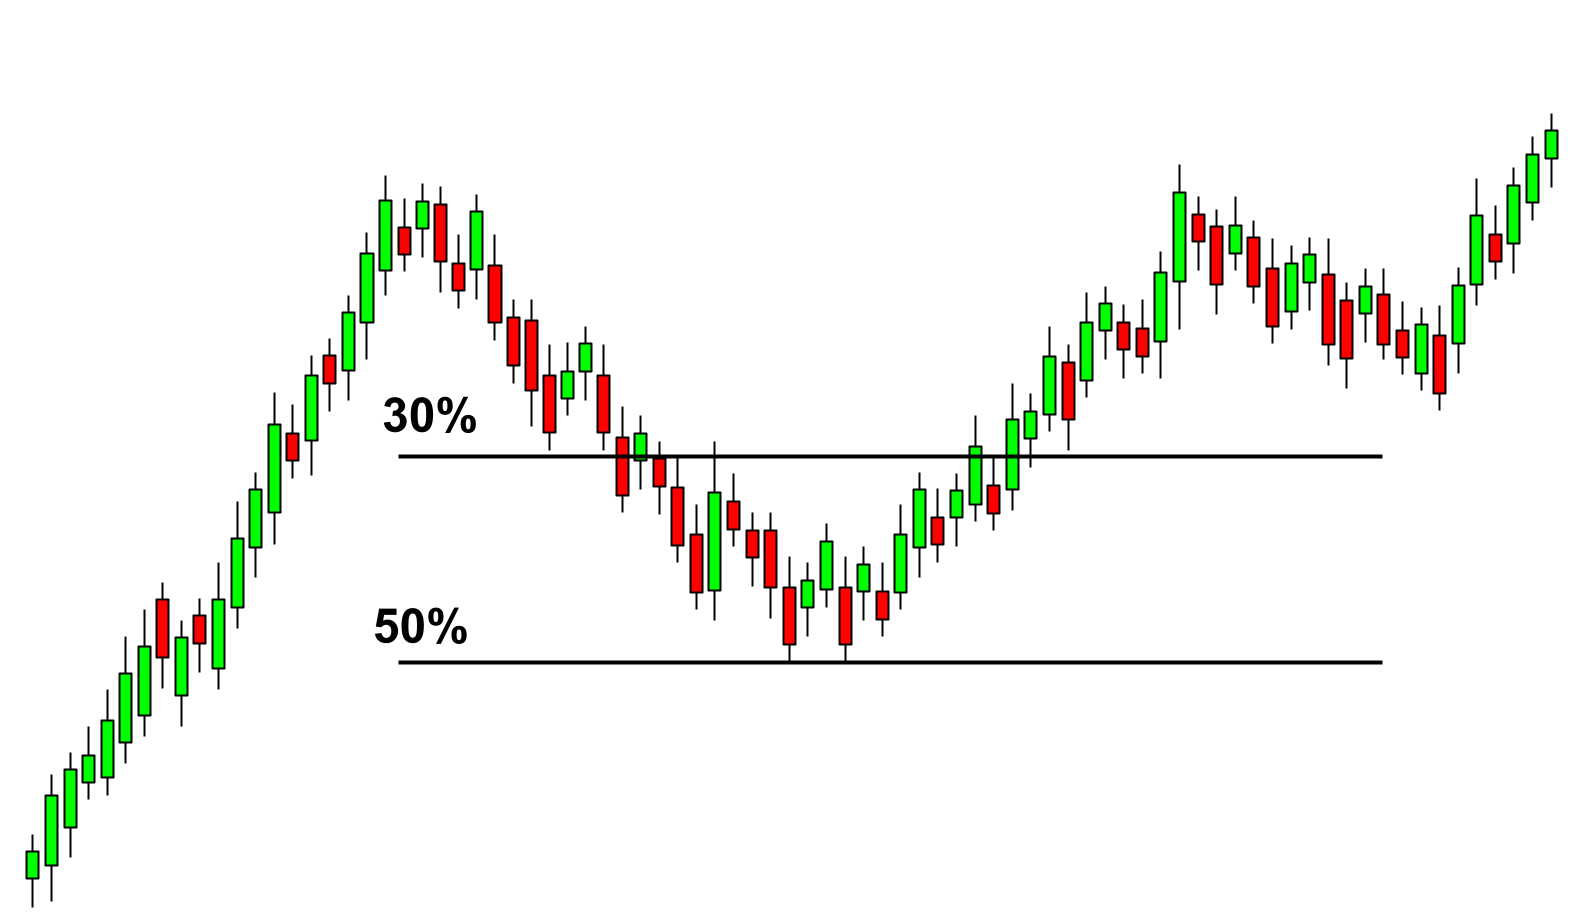 The retracement levels to spot cup and handle pattern.